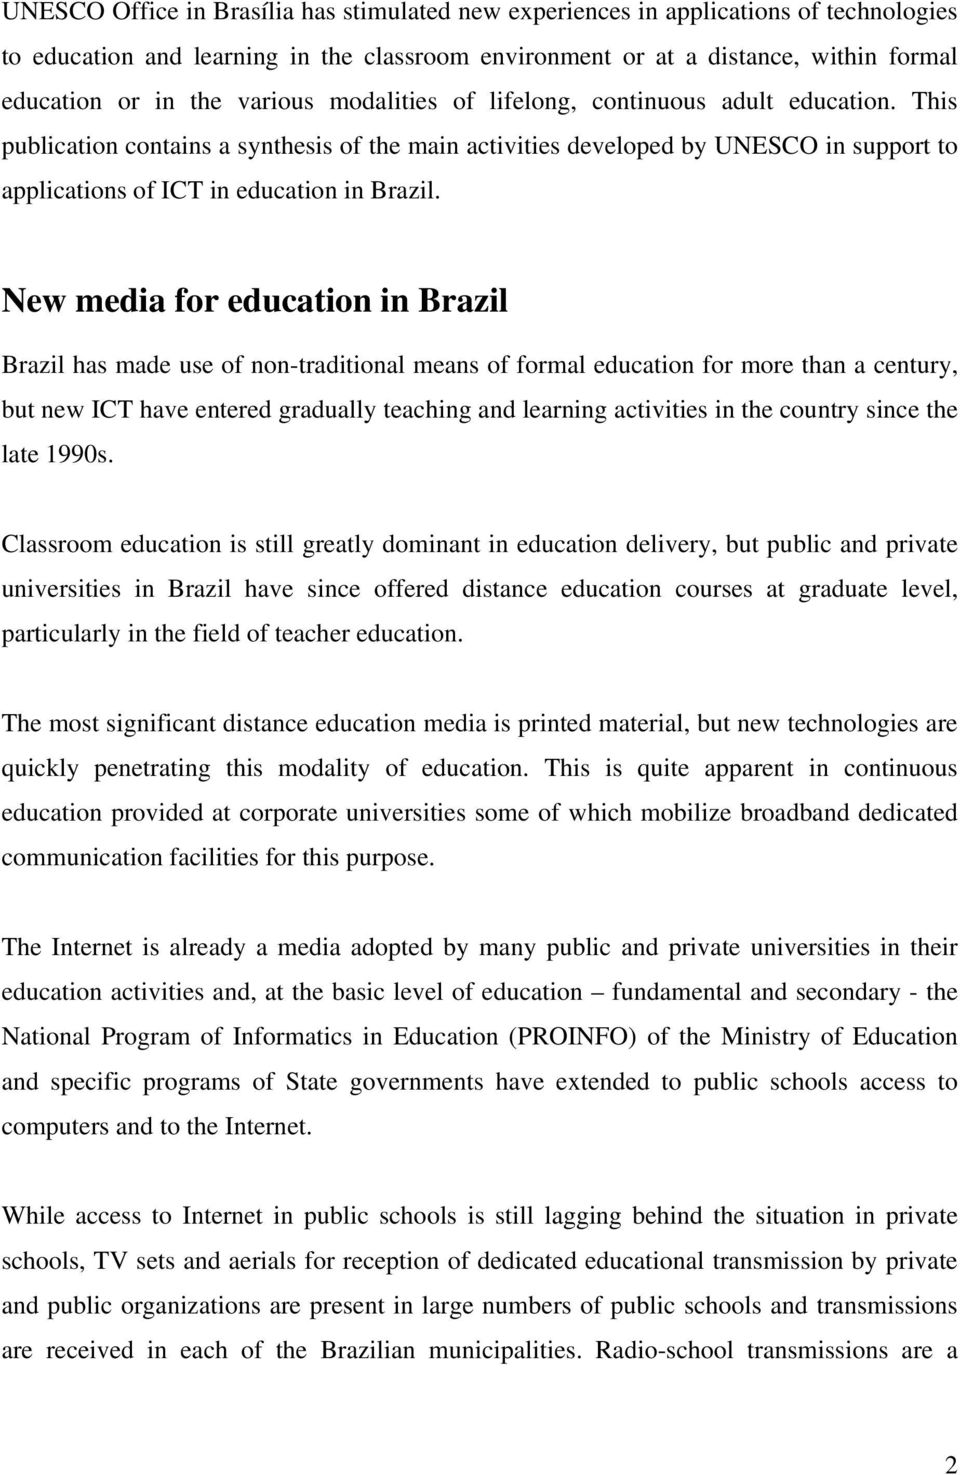 New media for education in Brazil Brazil has made use of non-traditional means of formal education for more than a century, but new ICT have entered gradually teaching and learning activities in the